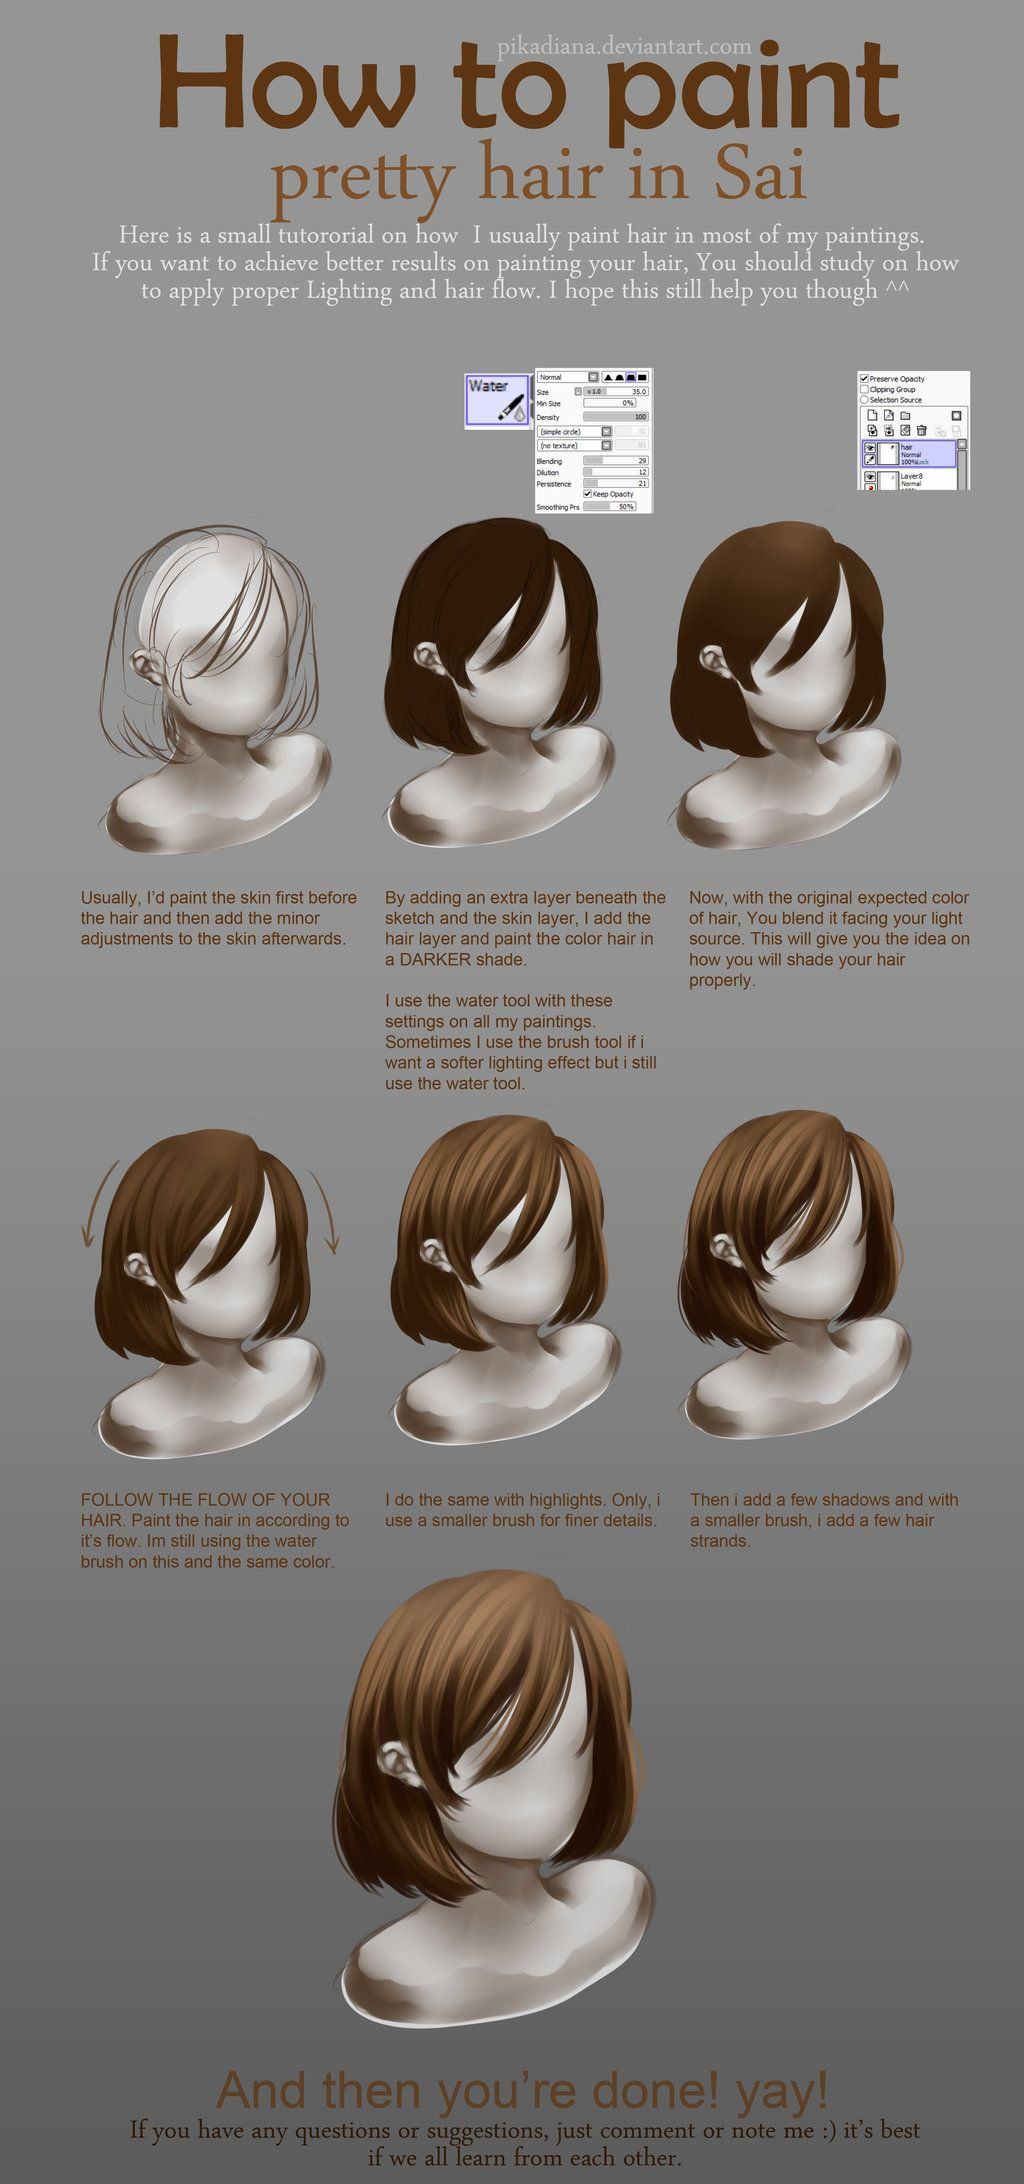 Tutorial How To Paint Purrty Hair With Sai Digital Painting Tutorials How To Draw Hair Digital Art Tutorial